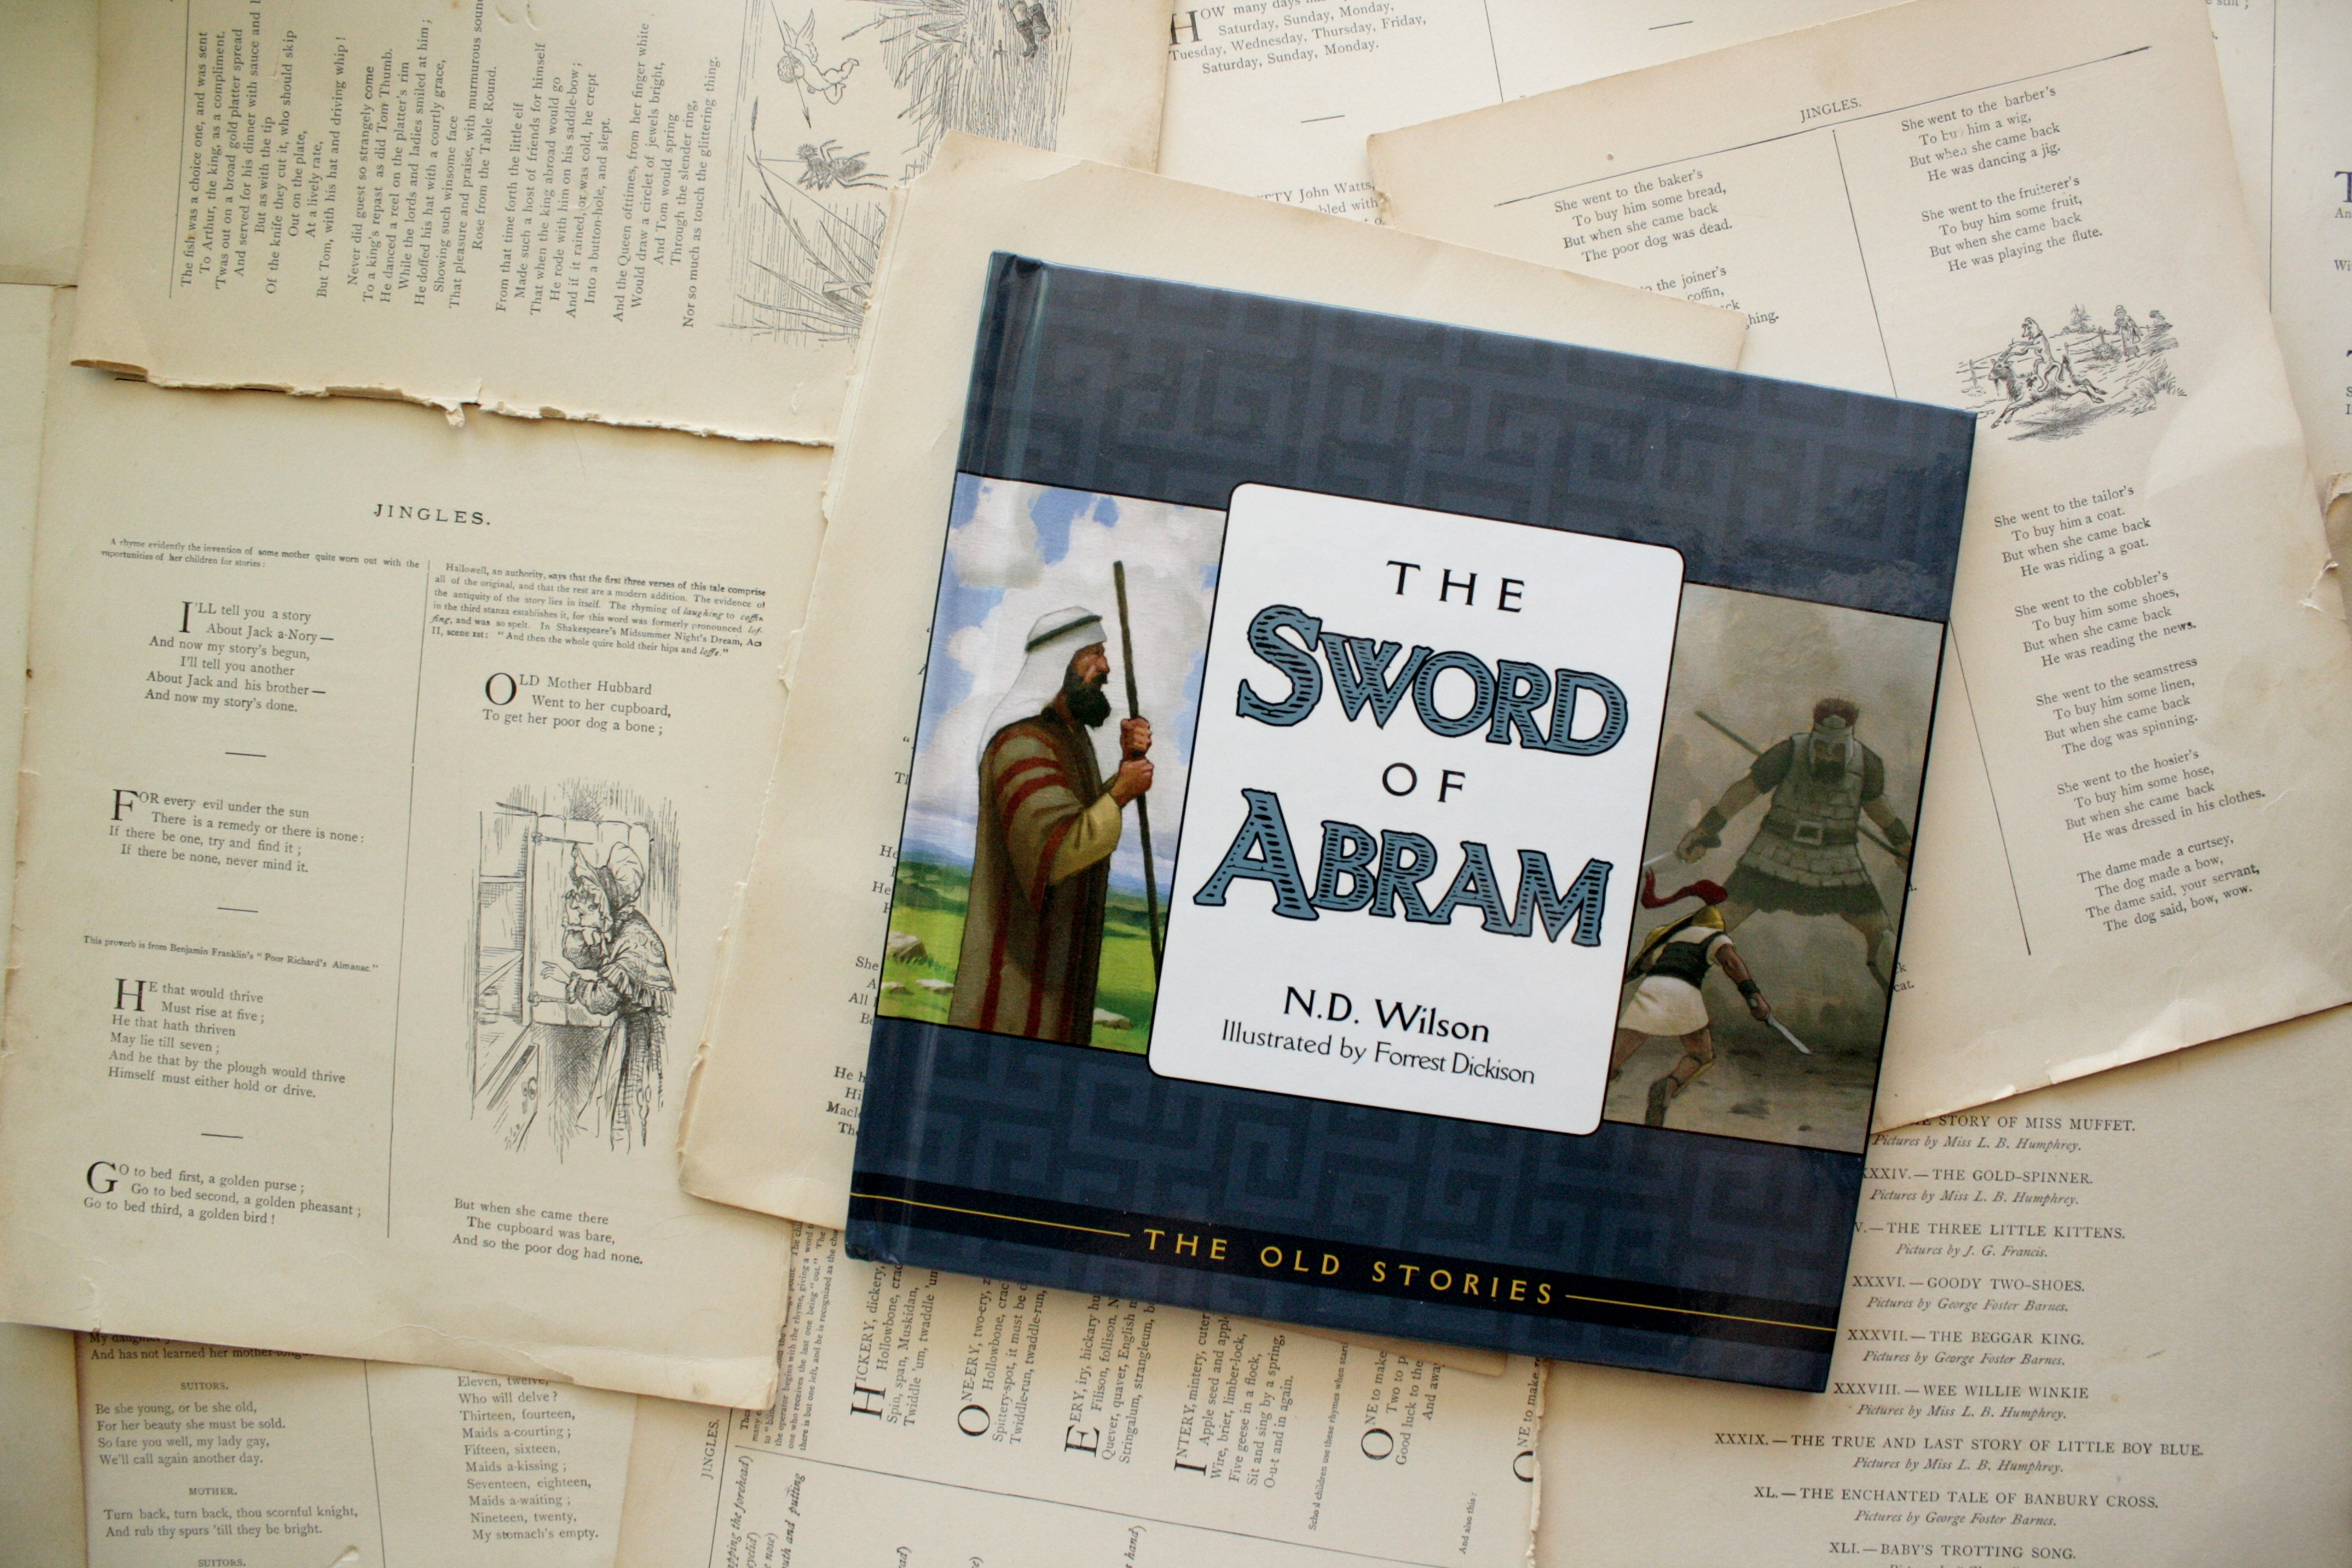 The Sword of Abram | N. D. Wilson